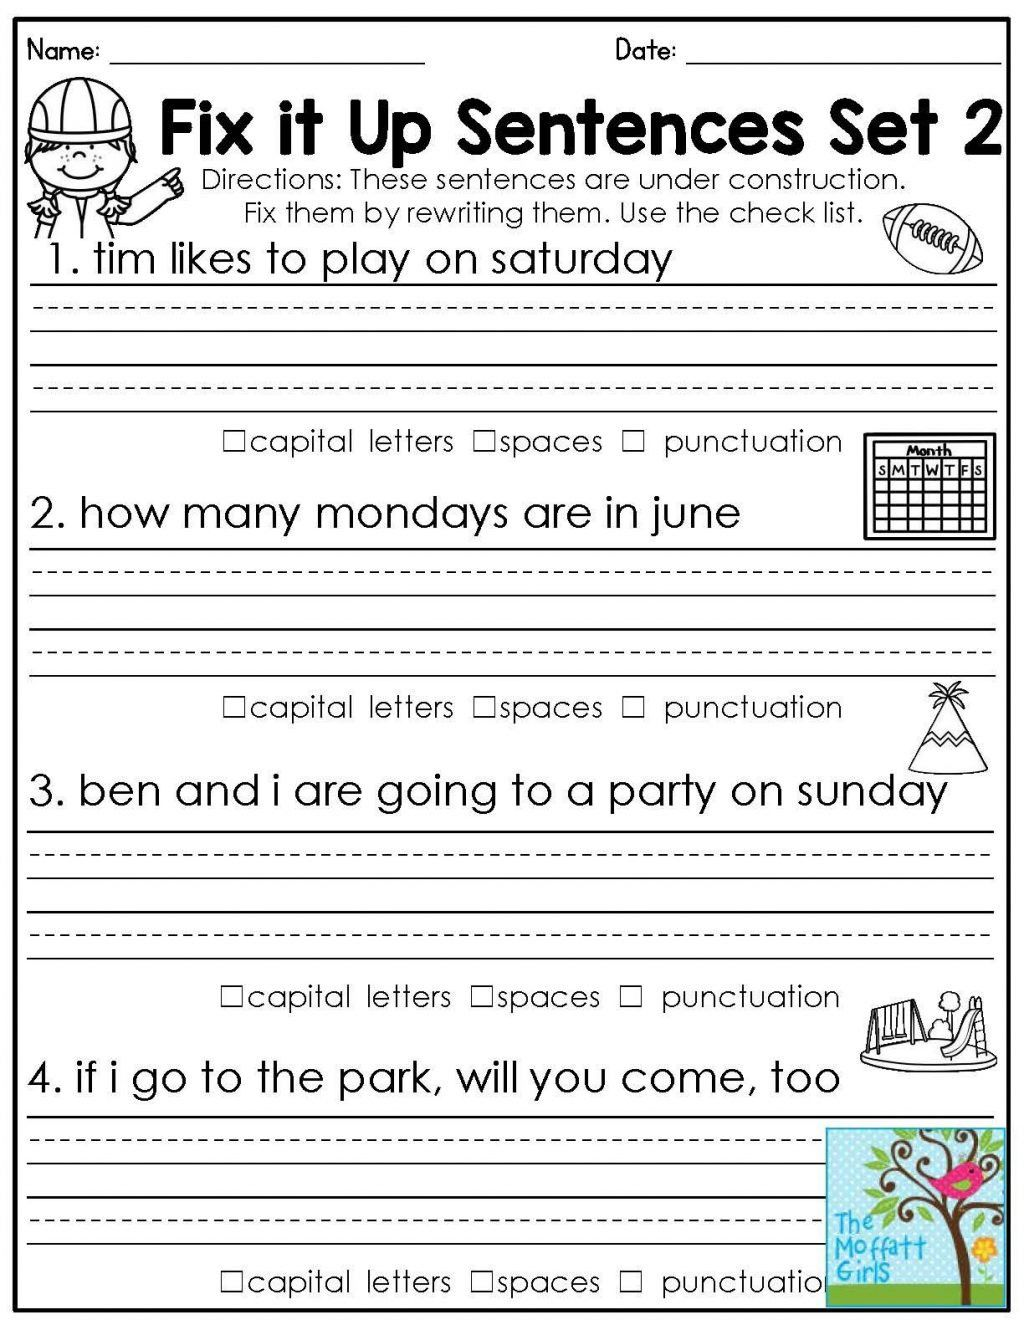 4 Free Grammar Worksheets Second Grade 2 Punctuation Pin Grammar Proofreading Worksheets 2nd In 2020 2nd Grade Worksheets Grammar Practice Punctuation Worksheets